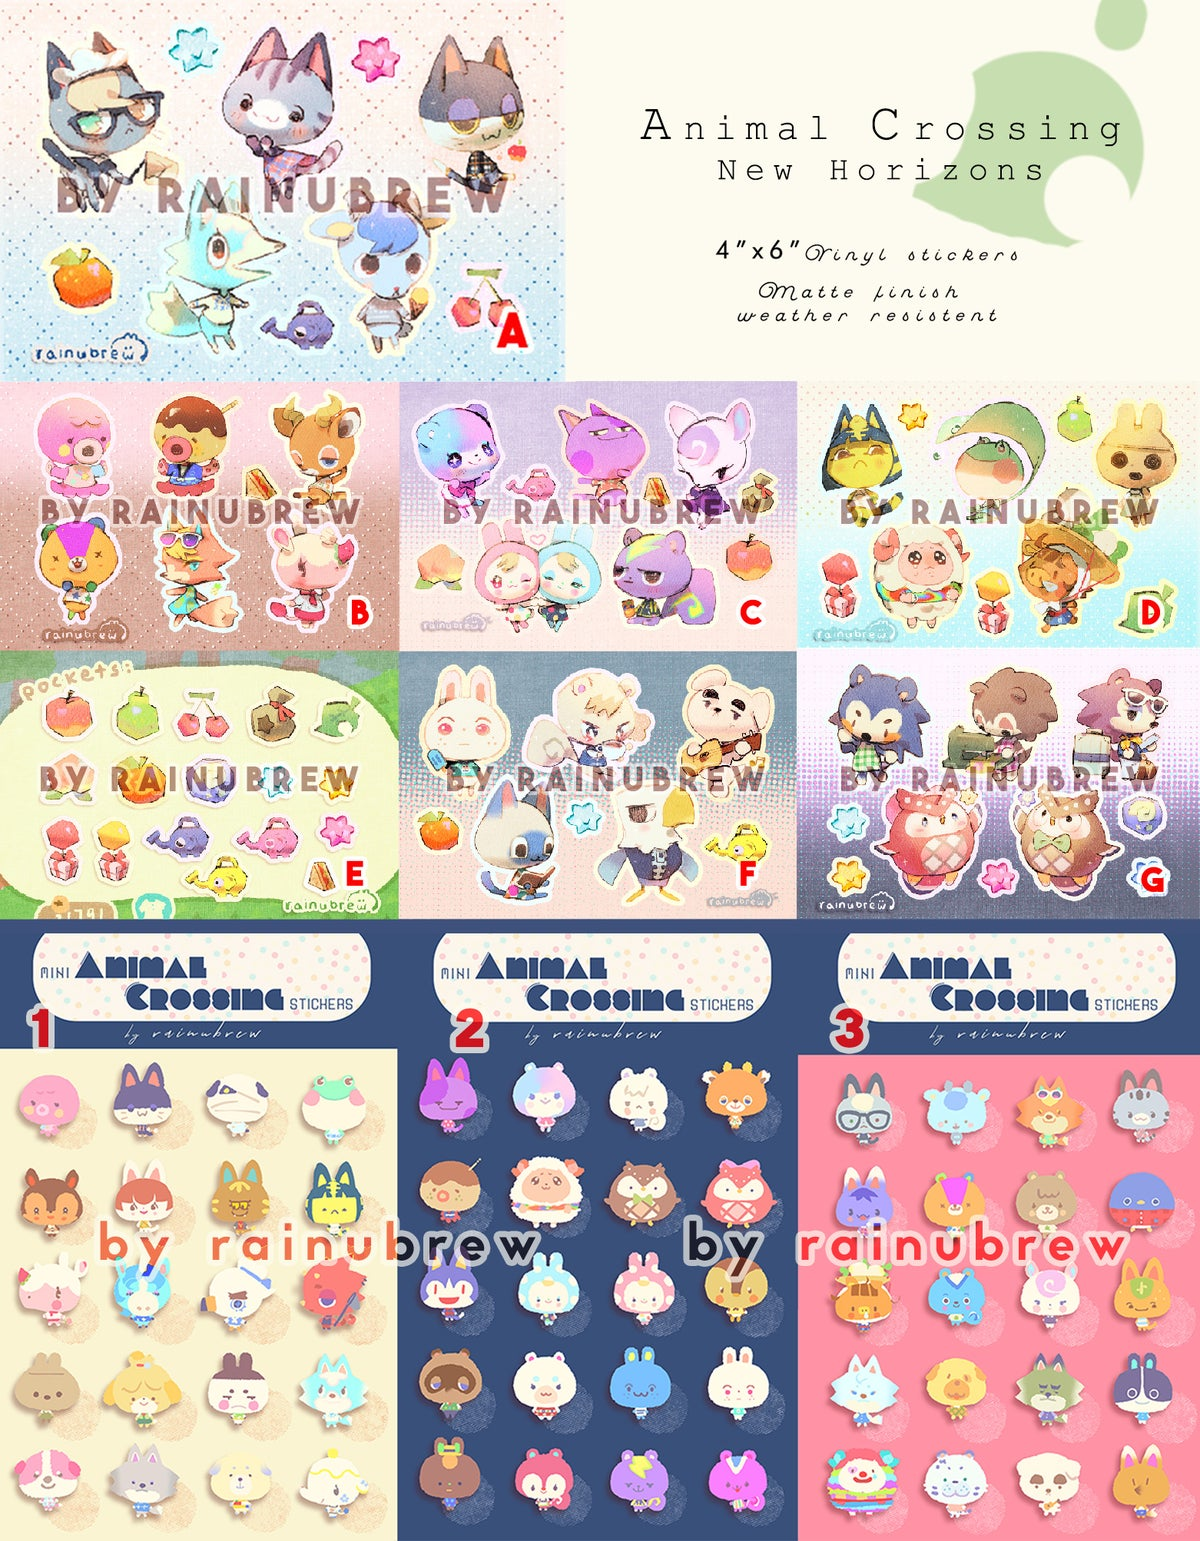 Image of Anime Crossing New Horizon - 6x4 inch sticker sheets [PRE ORDER]